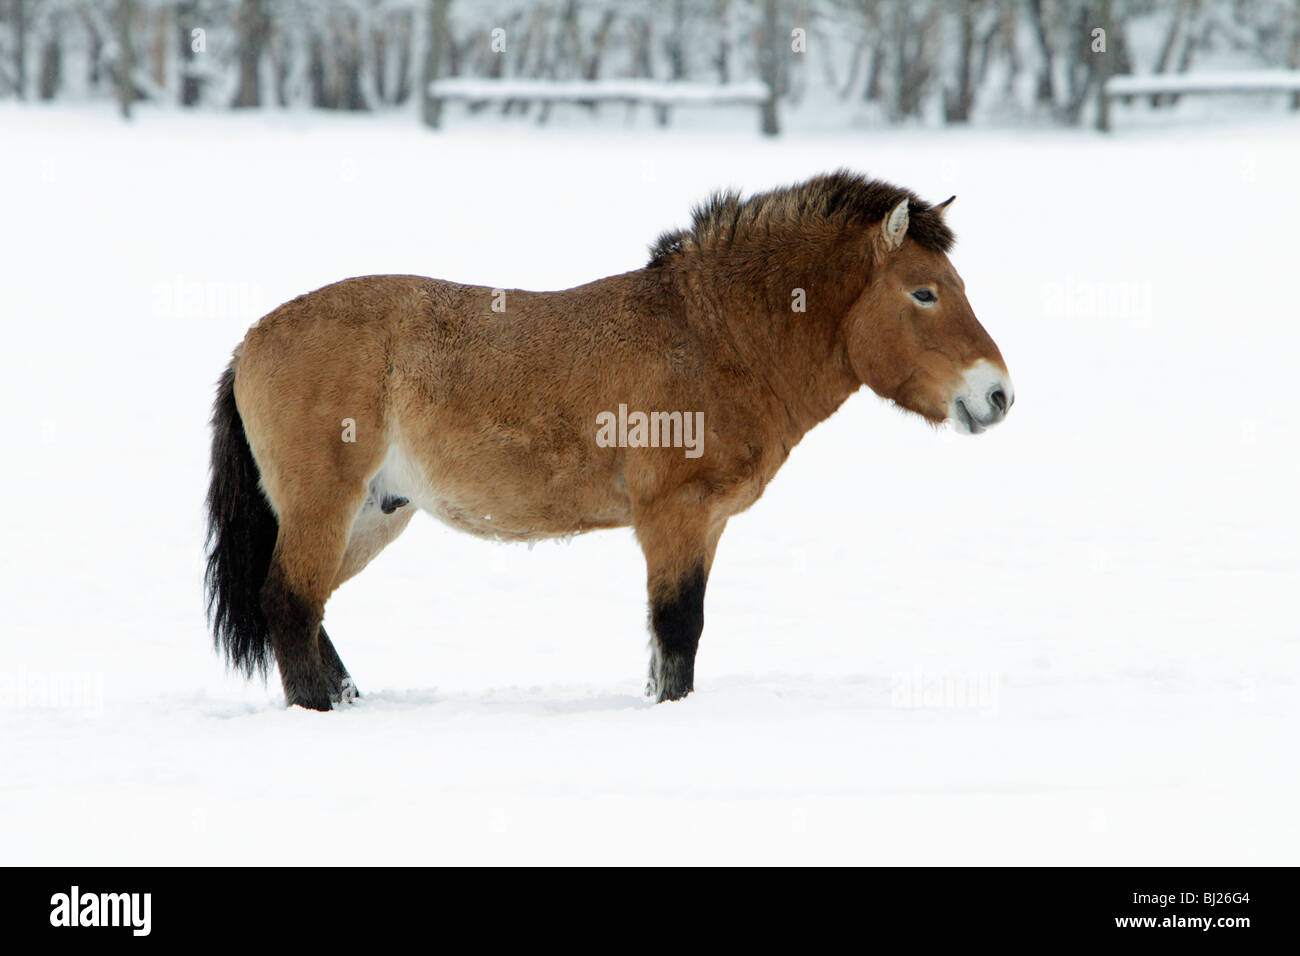 Presewalski's horse, Stallion on snow covered field, Germany - Stock Image